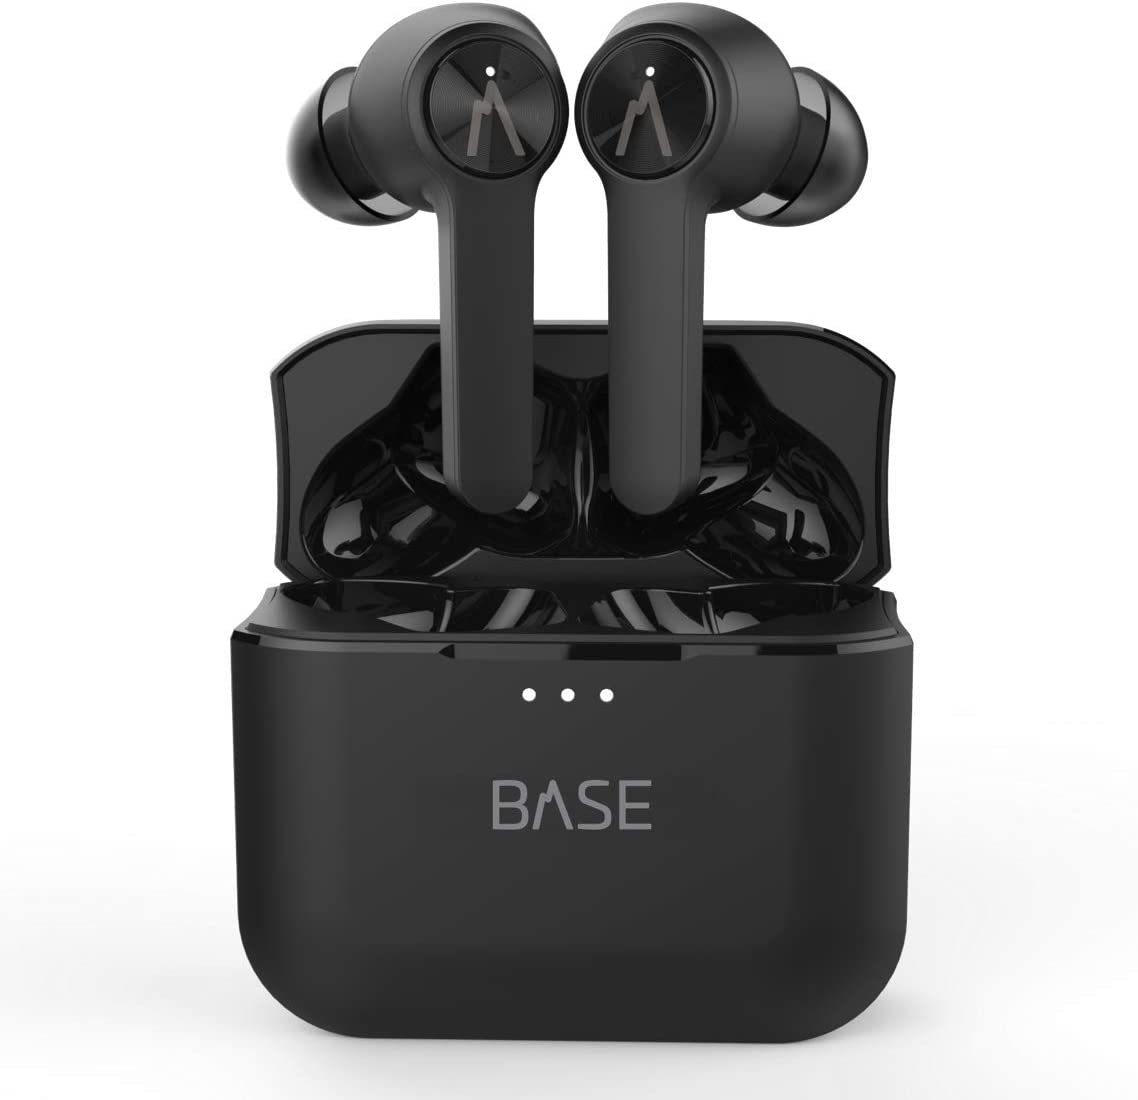 Amazon Com Base Line True Wireless Earbuds Headphones 32 Hours Bluetooth 5 Dual Mic Noise Canceling Charging Case Deep Bass Sound Headset Small Earphones For Android Samsung Iphone With Volume Control Home Audio